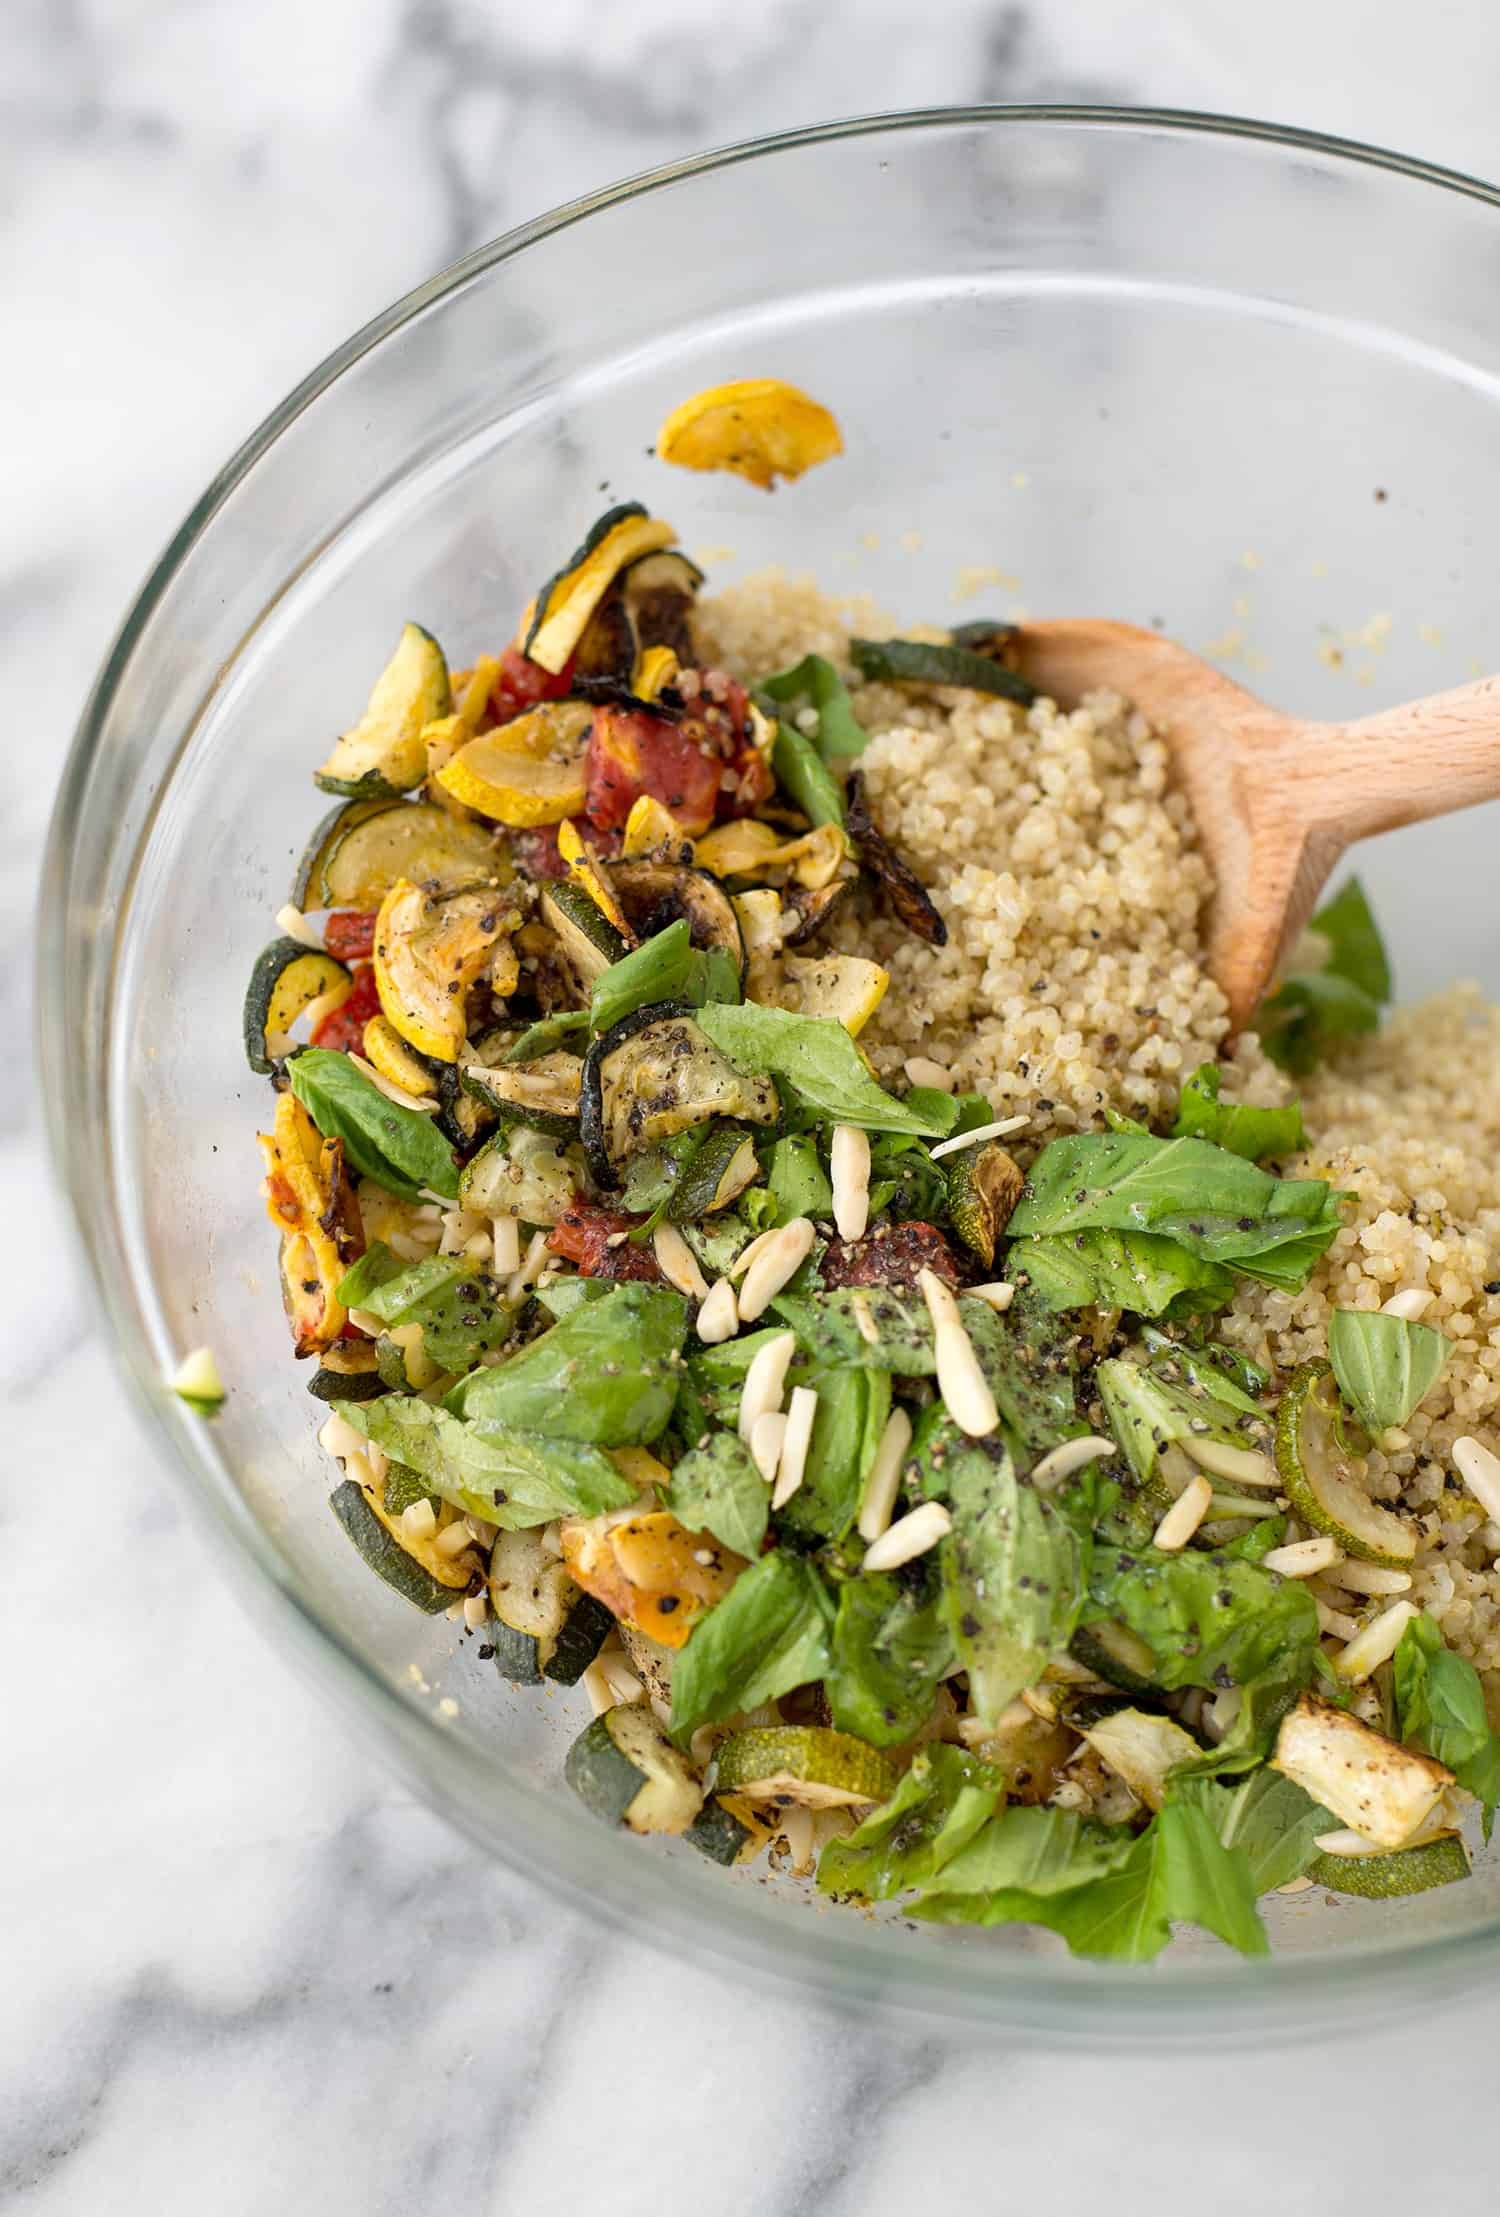 Roasted Summer Squash and Quinoa Salad! This side dish is perfect for summer or dinners. Roasted zucchini, squash and tomatoes with quinoa and a lemon-basil dressing. Vegan and GlutenFree | www.delishknowledge.com